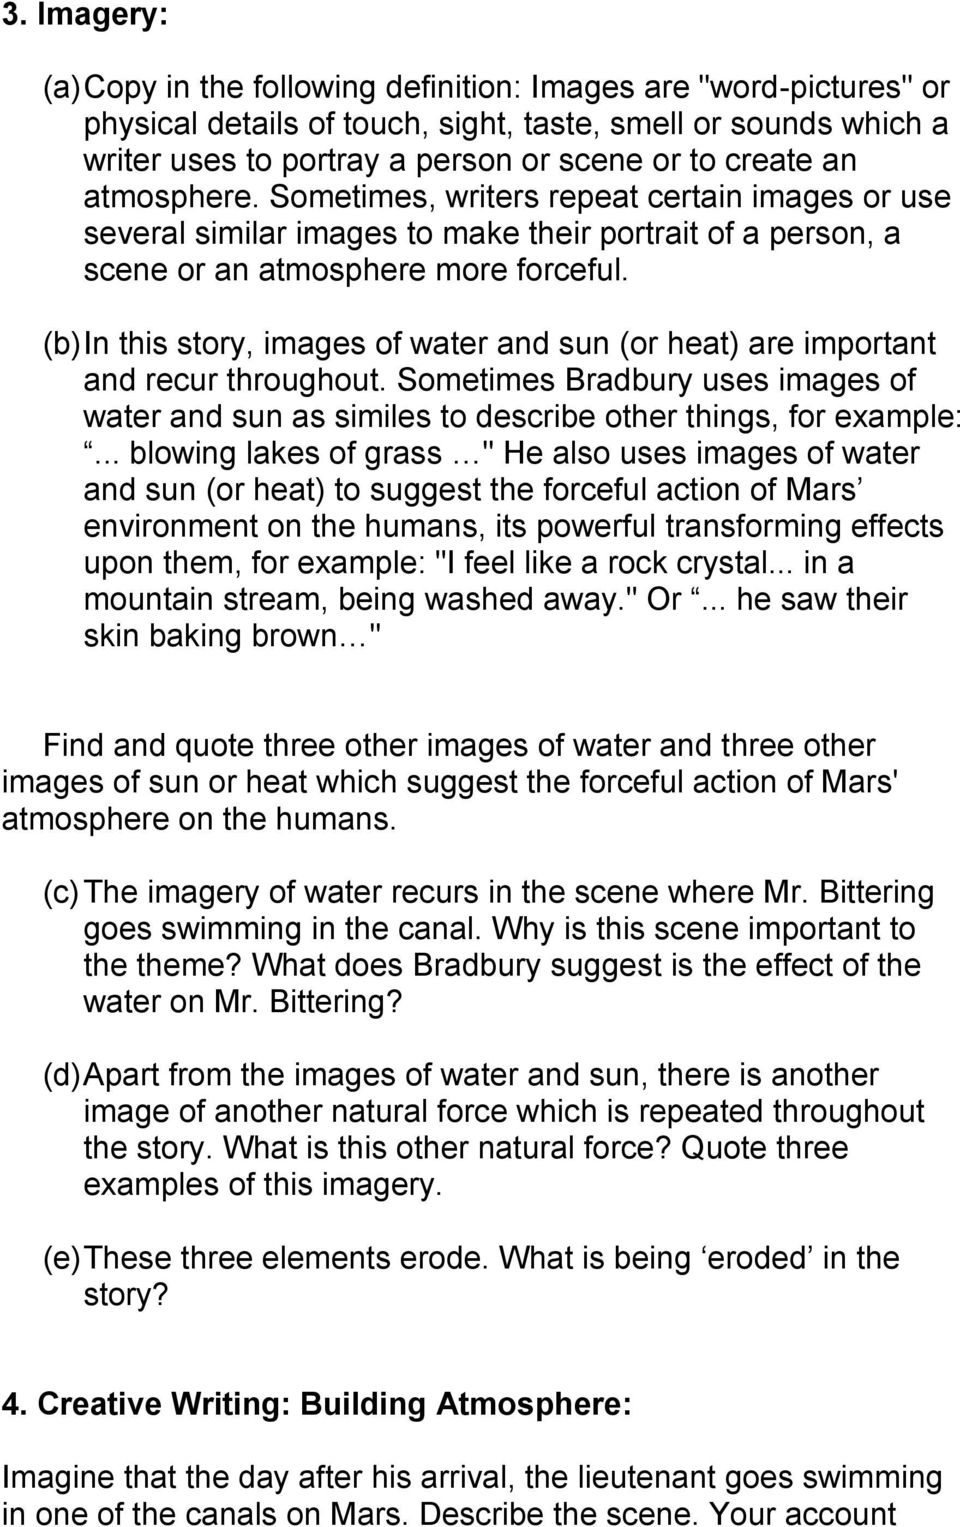 (b) In this story, images of water and sun (or heat) are important and recur throughout. Sometimes Bradbury uses images of water and sun as similes to describe other things, for example:.